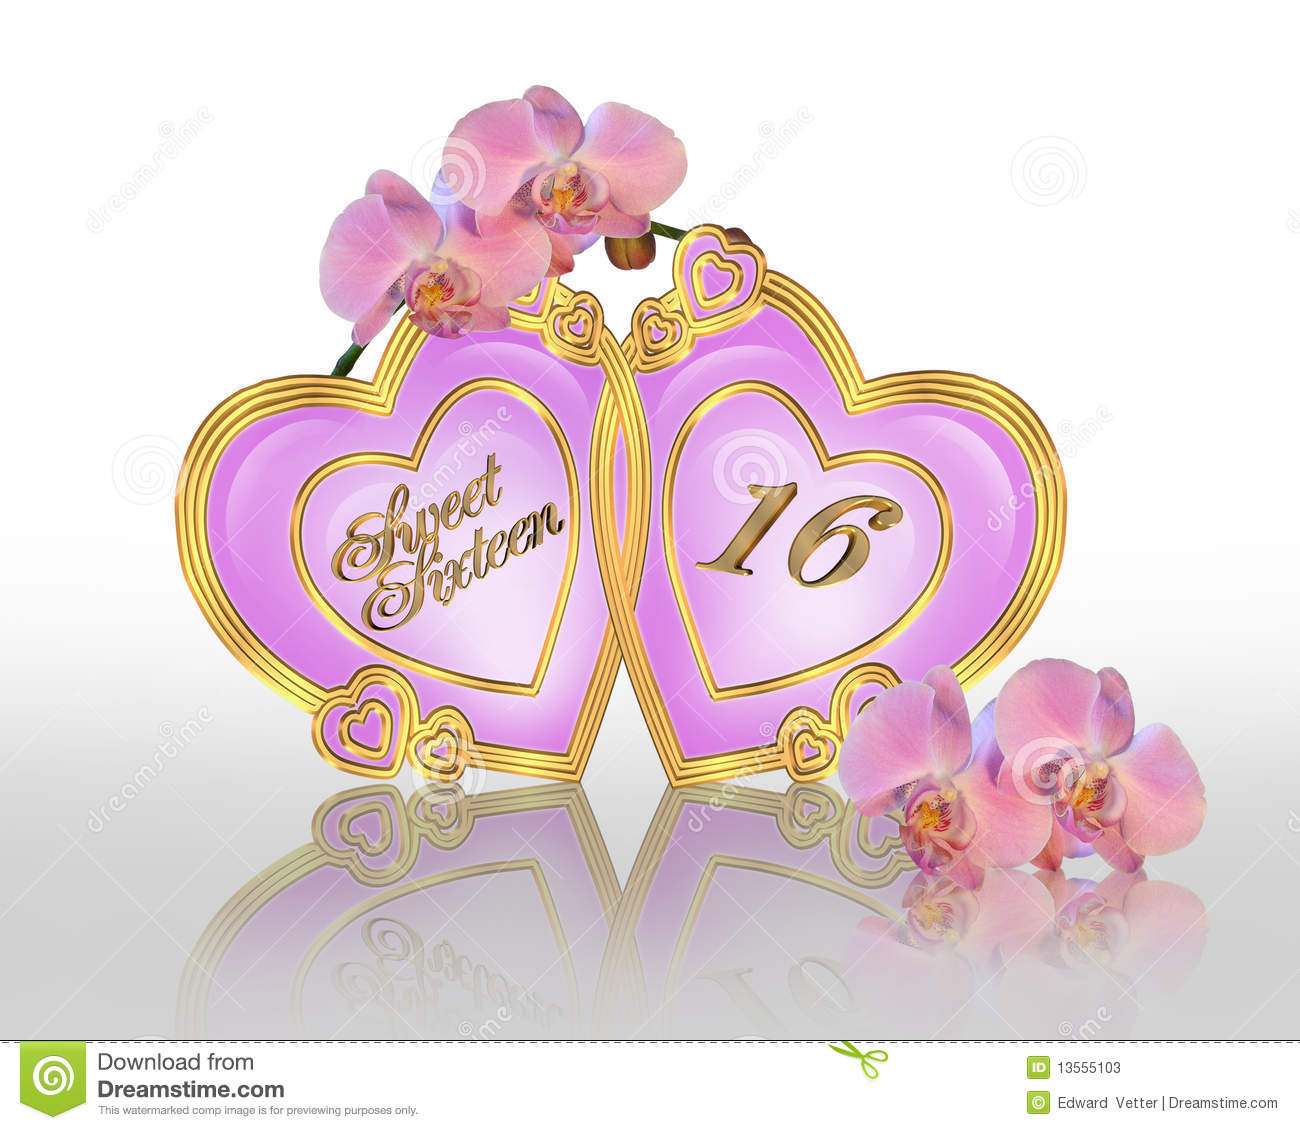 16th birthday wallpaper ; sweet-16-birthday-graphic-orchids-13555103